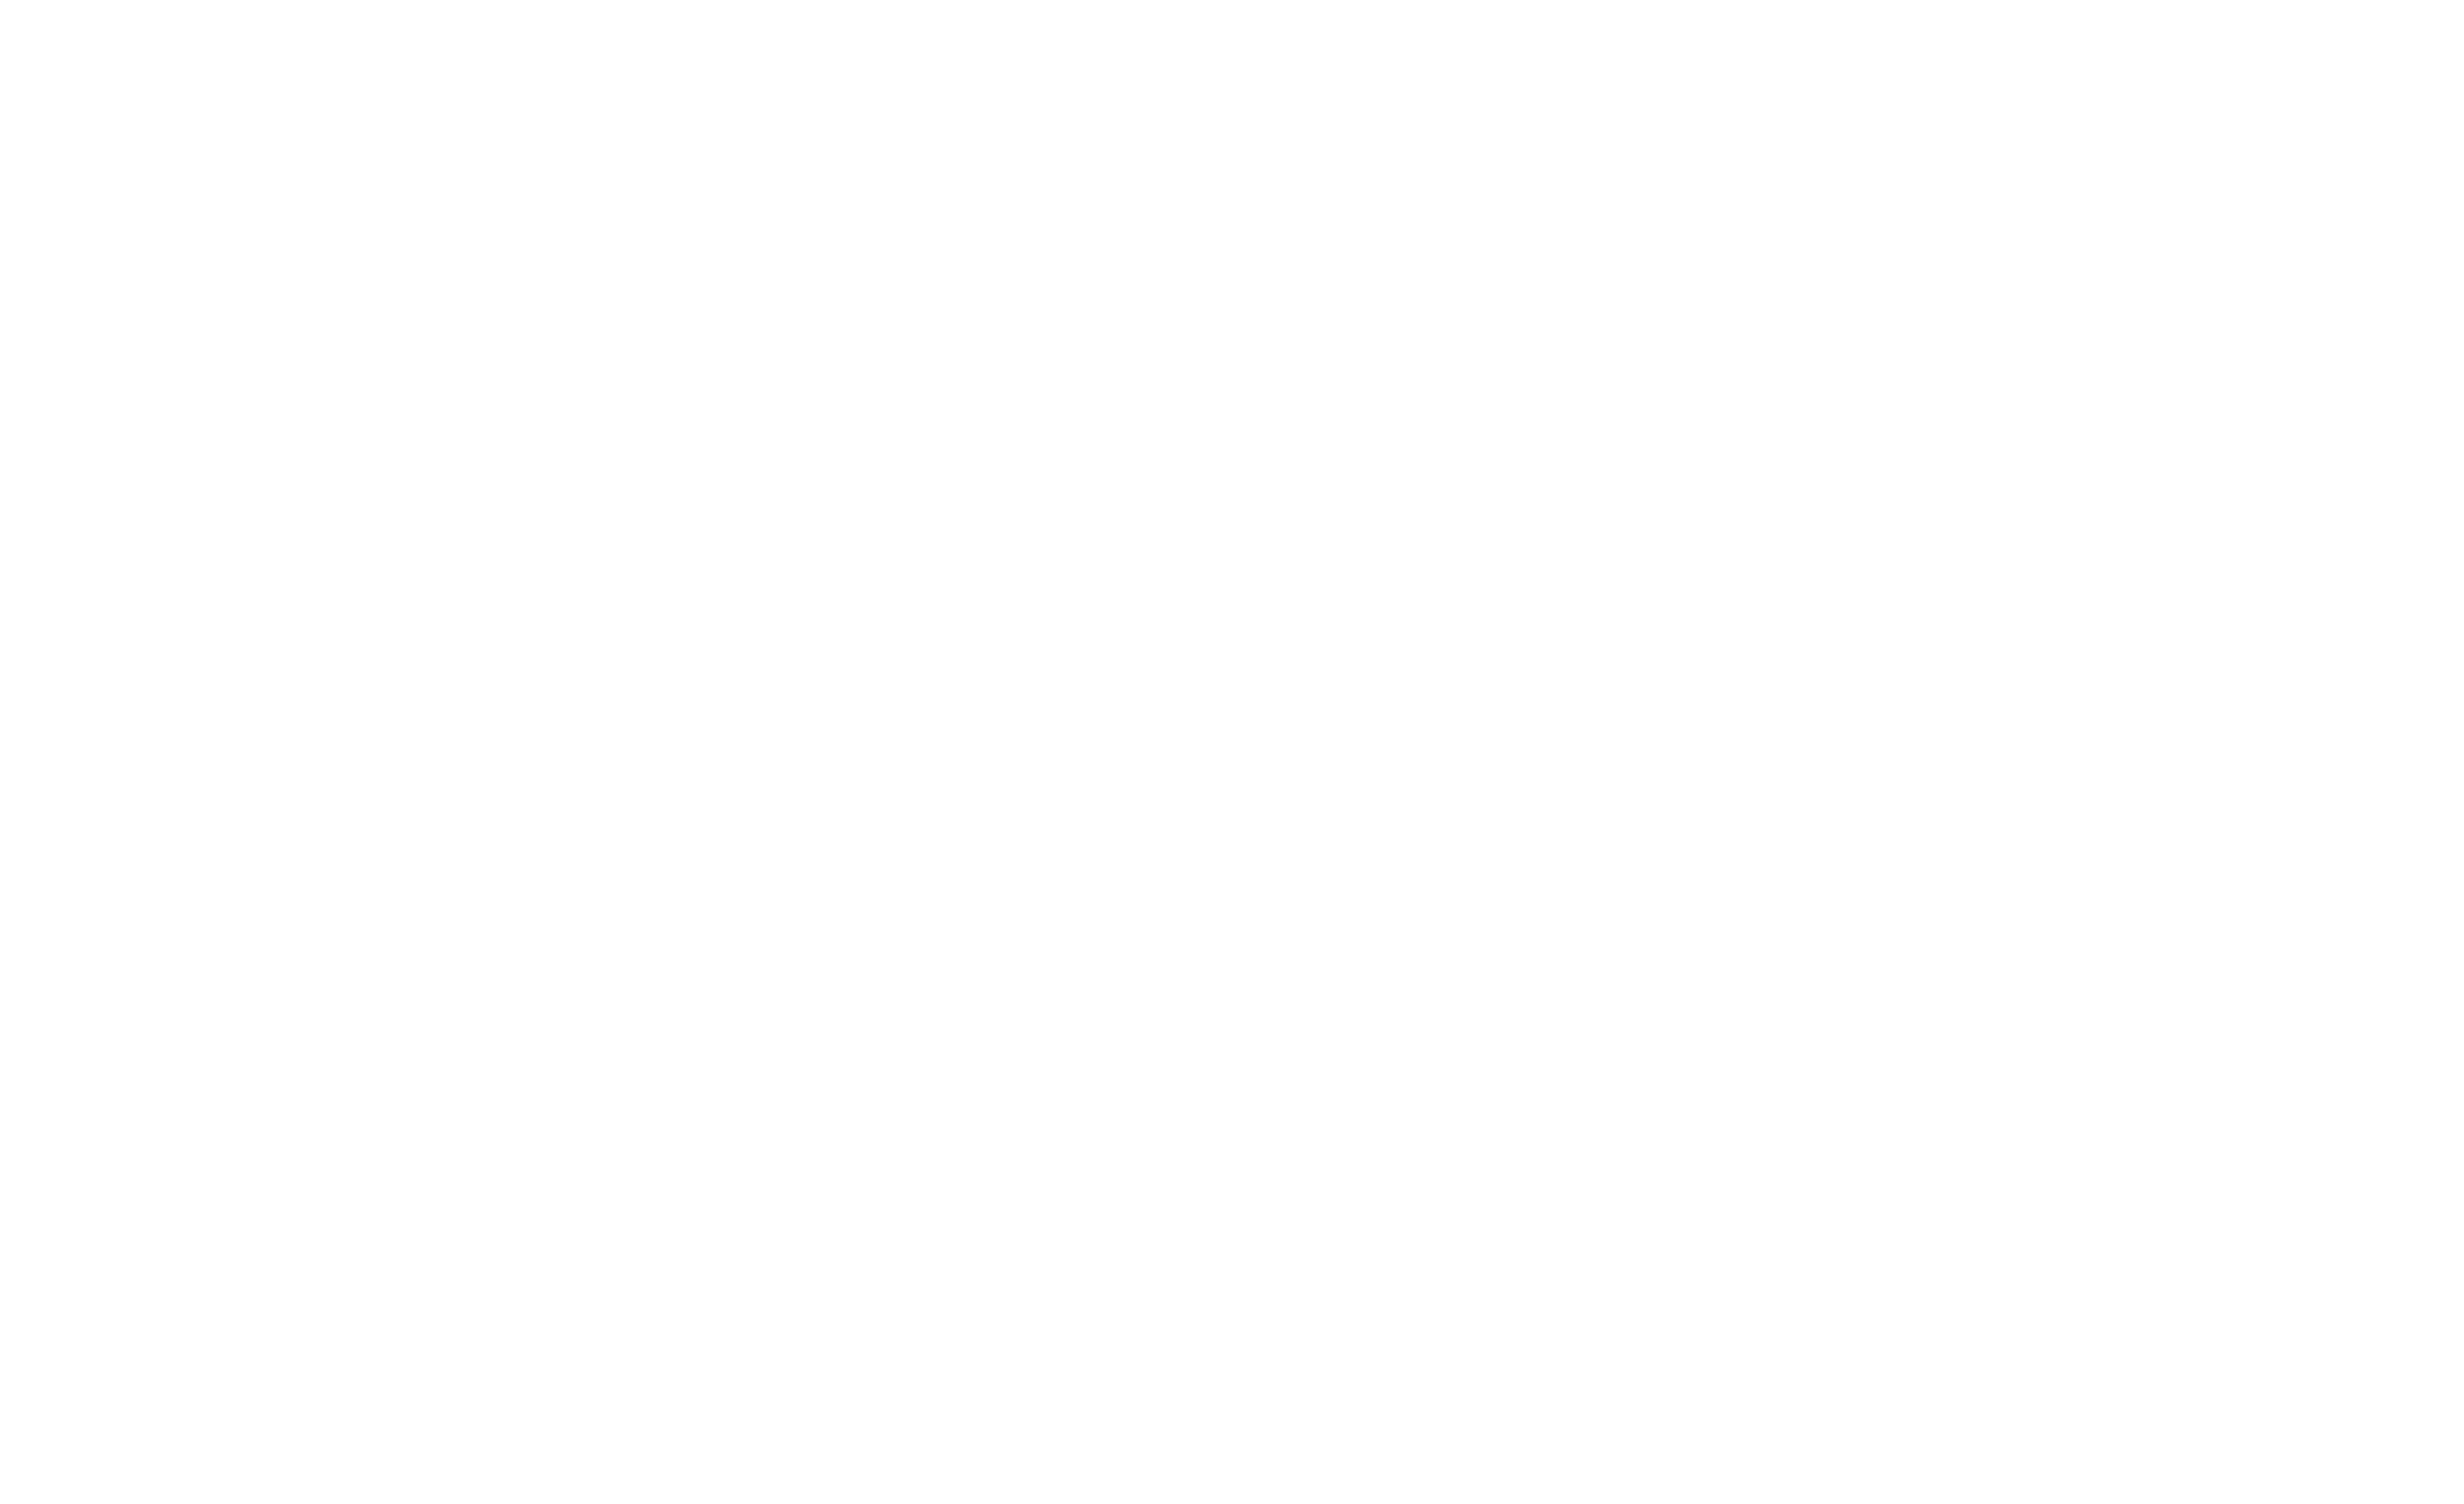 The Book Nook Peoria